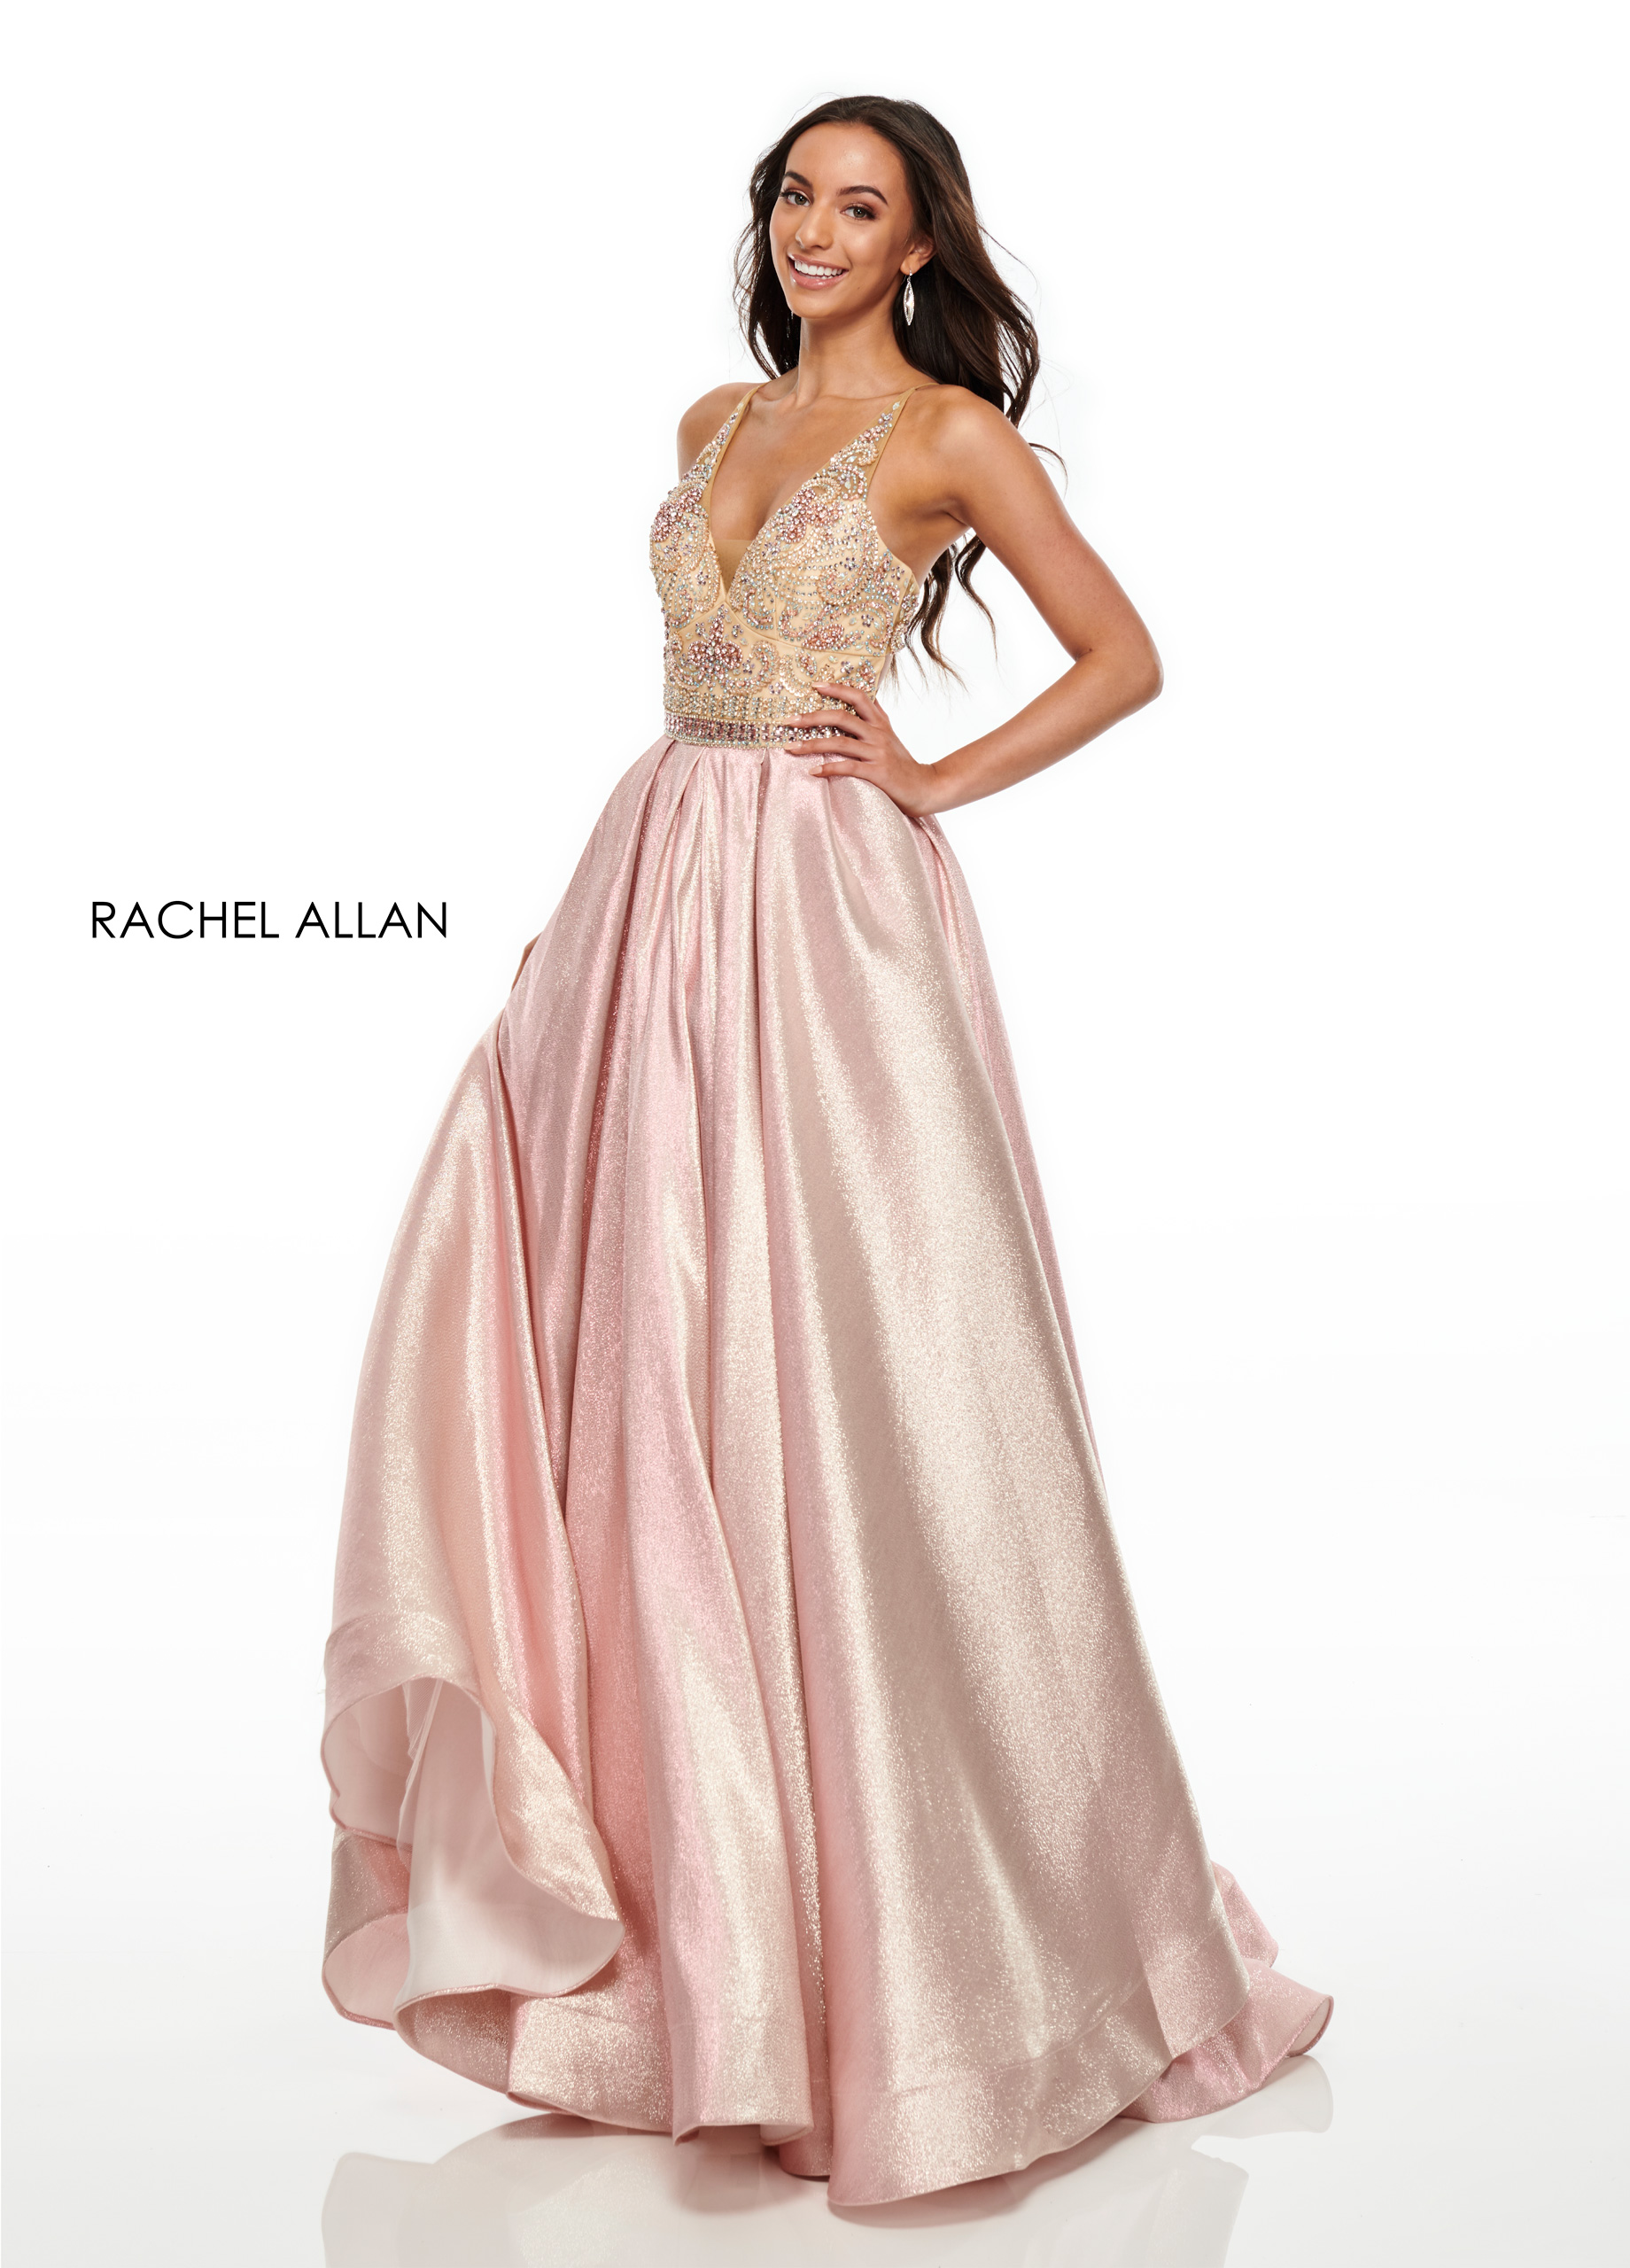 V-Neck A-Line Prom Dresses in Blush Color